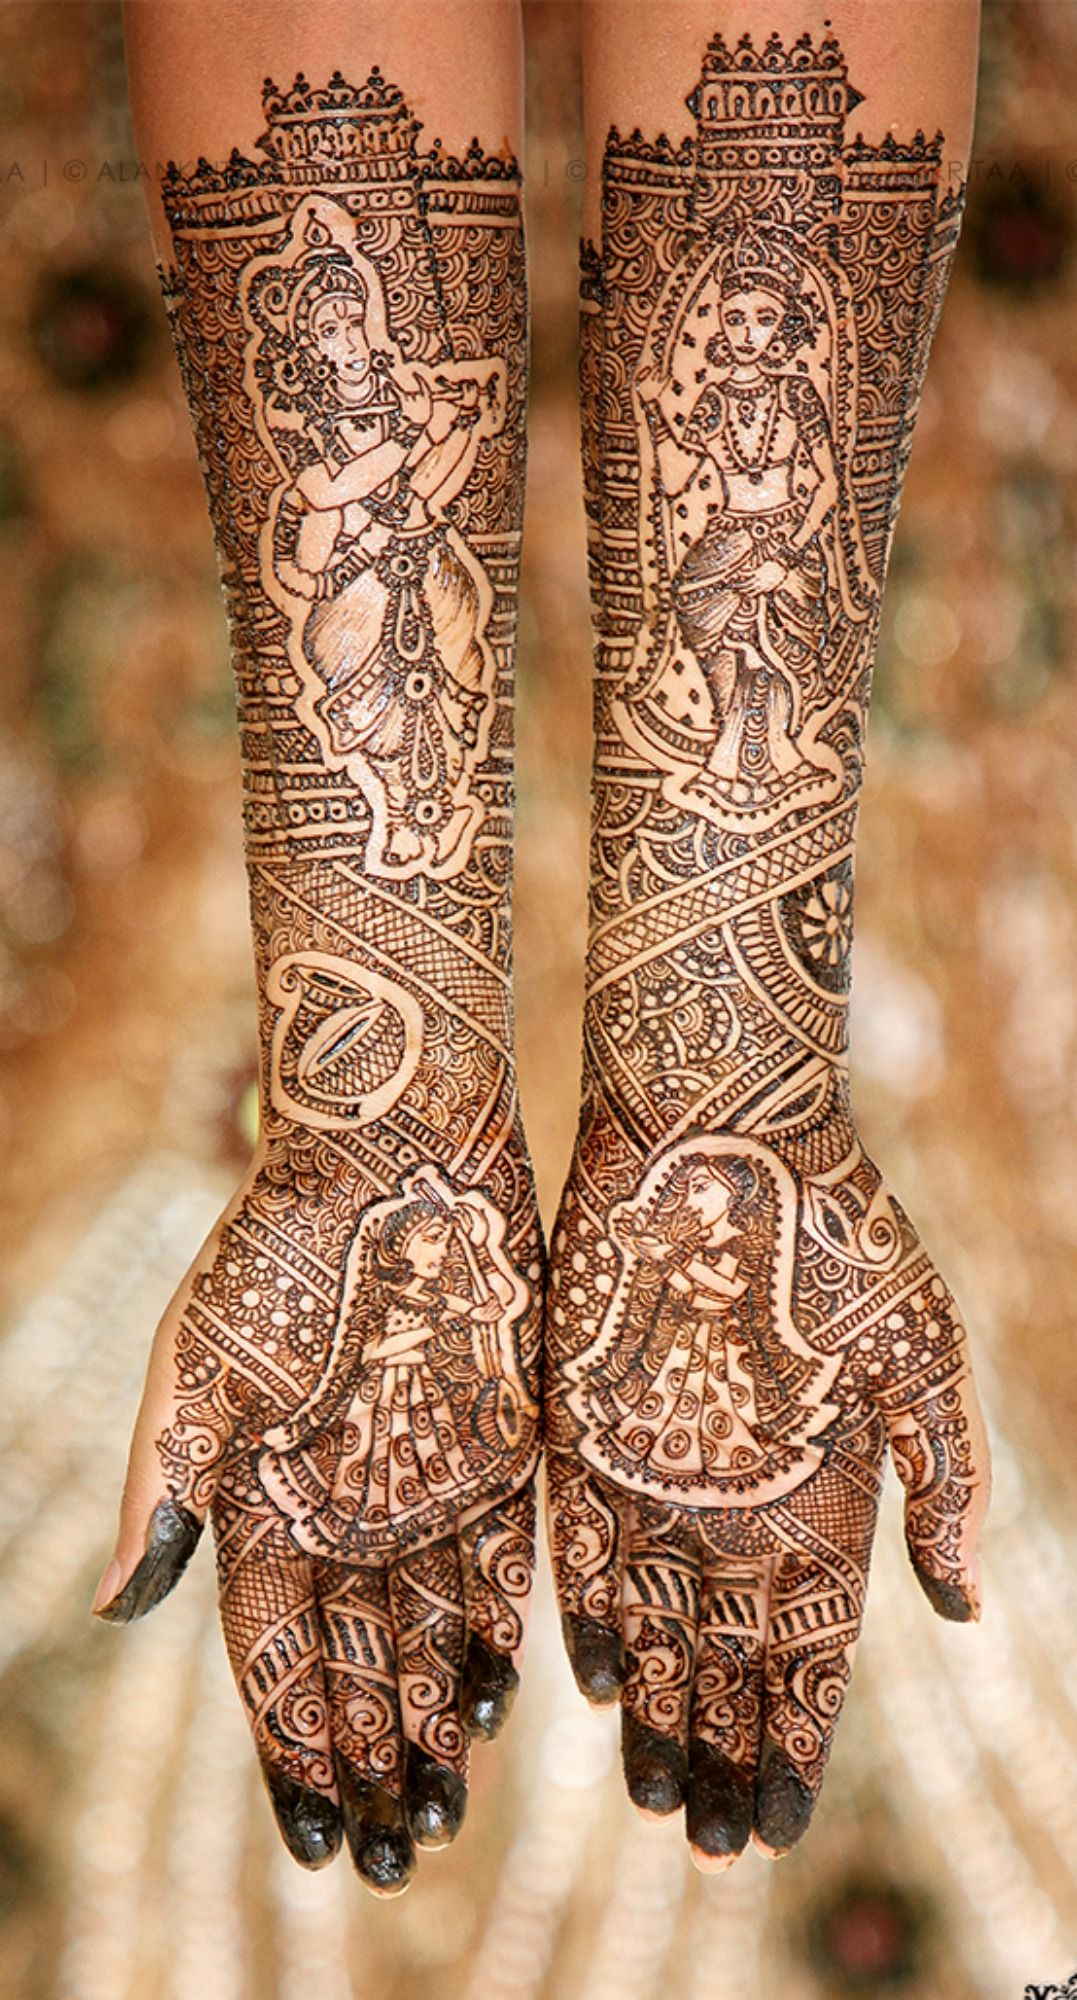 The Best Bridal Mehndi Designs For Full Hands! | Bridal ...